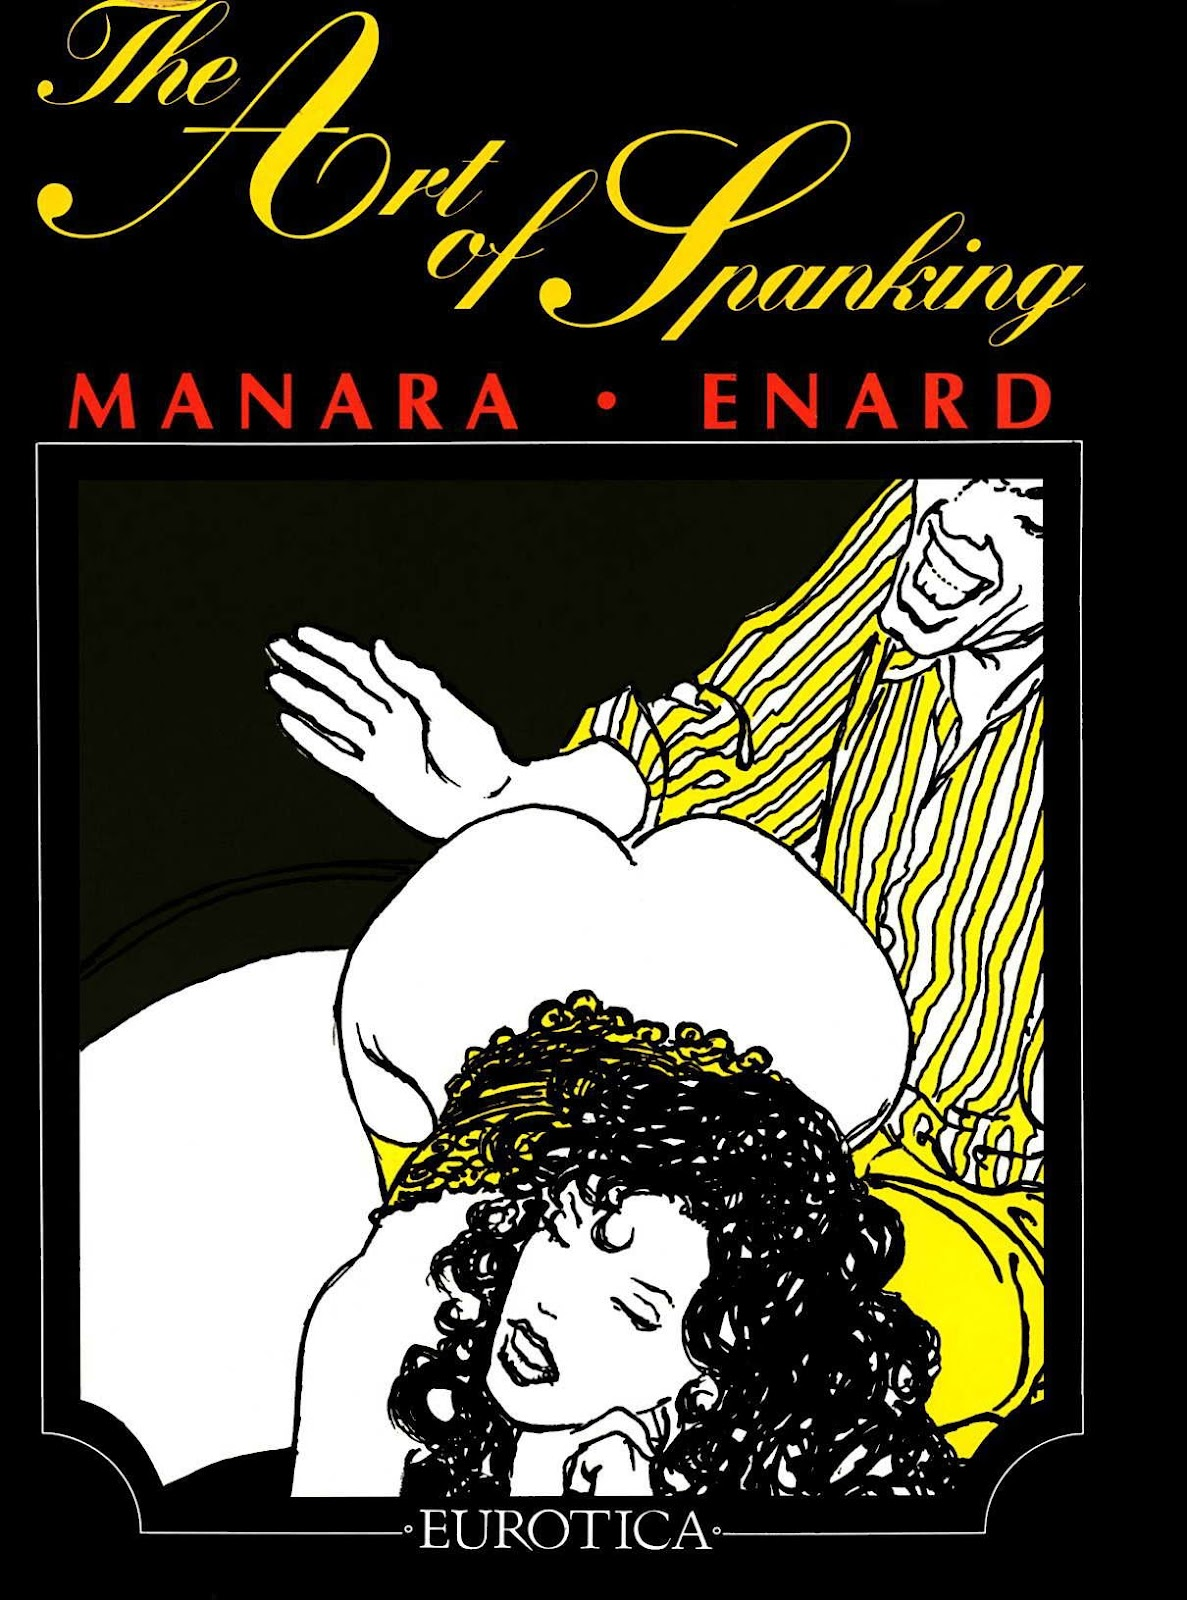 Read online The Art of Spanking comic -  Issue # TPB - 1